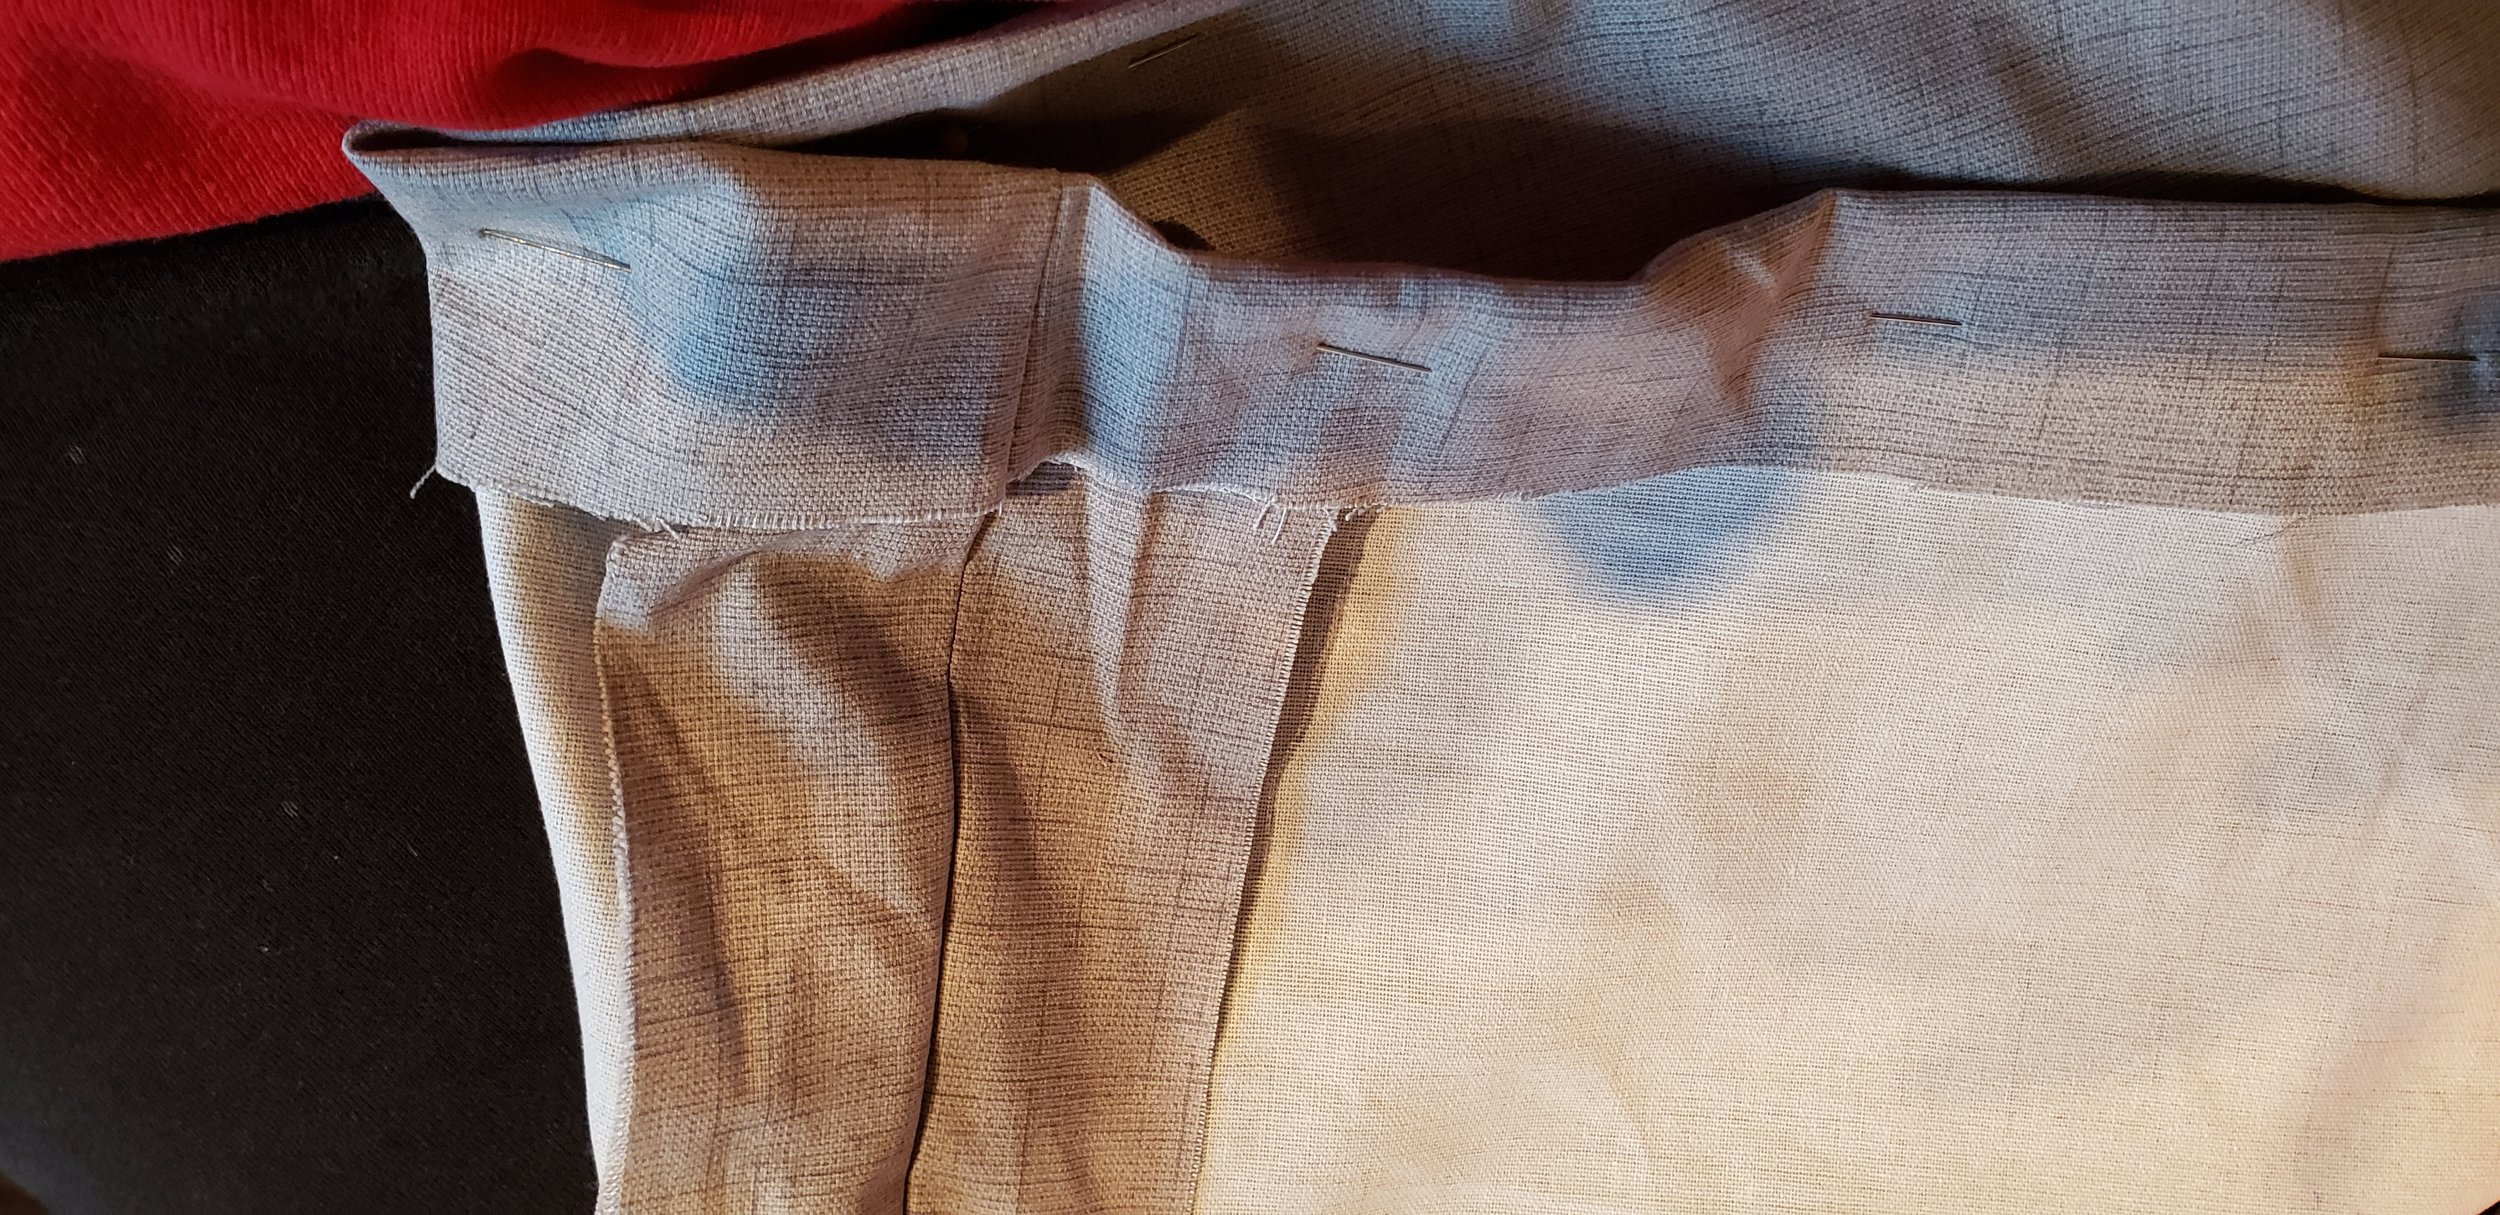 - I removed the cushion with the pinned hem, turned the fabric inside out, and ensured that any seam on the inside would be flattened so that the hem would be sewn over the seam appropriately for best results.